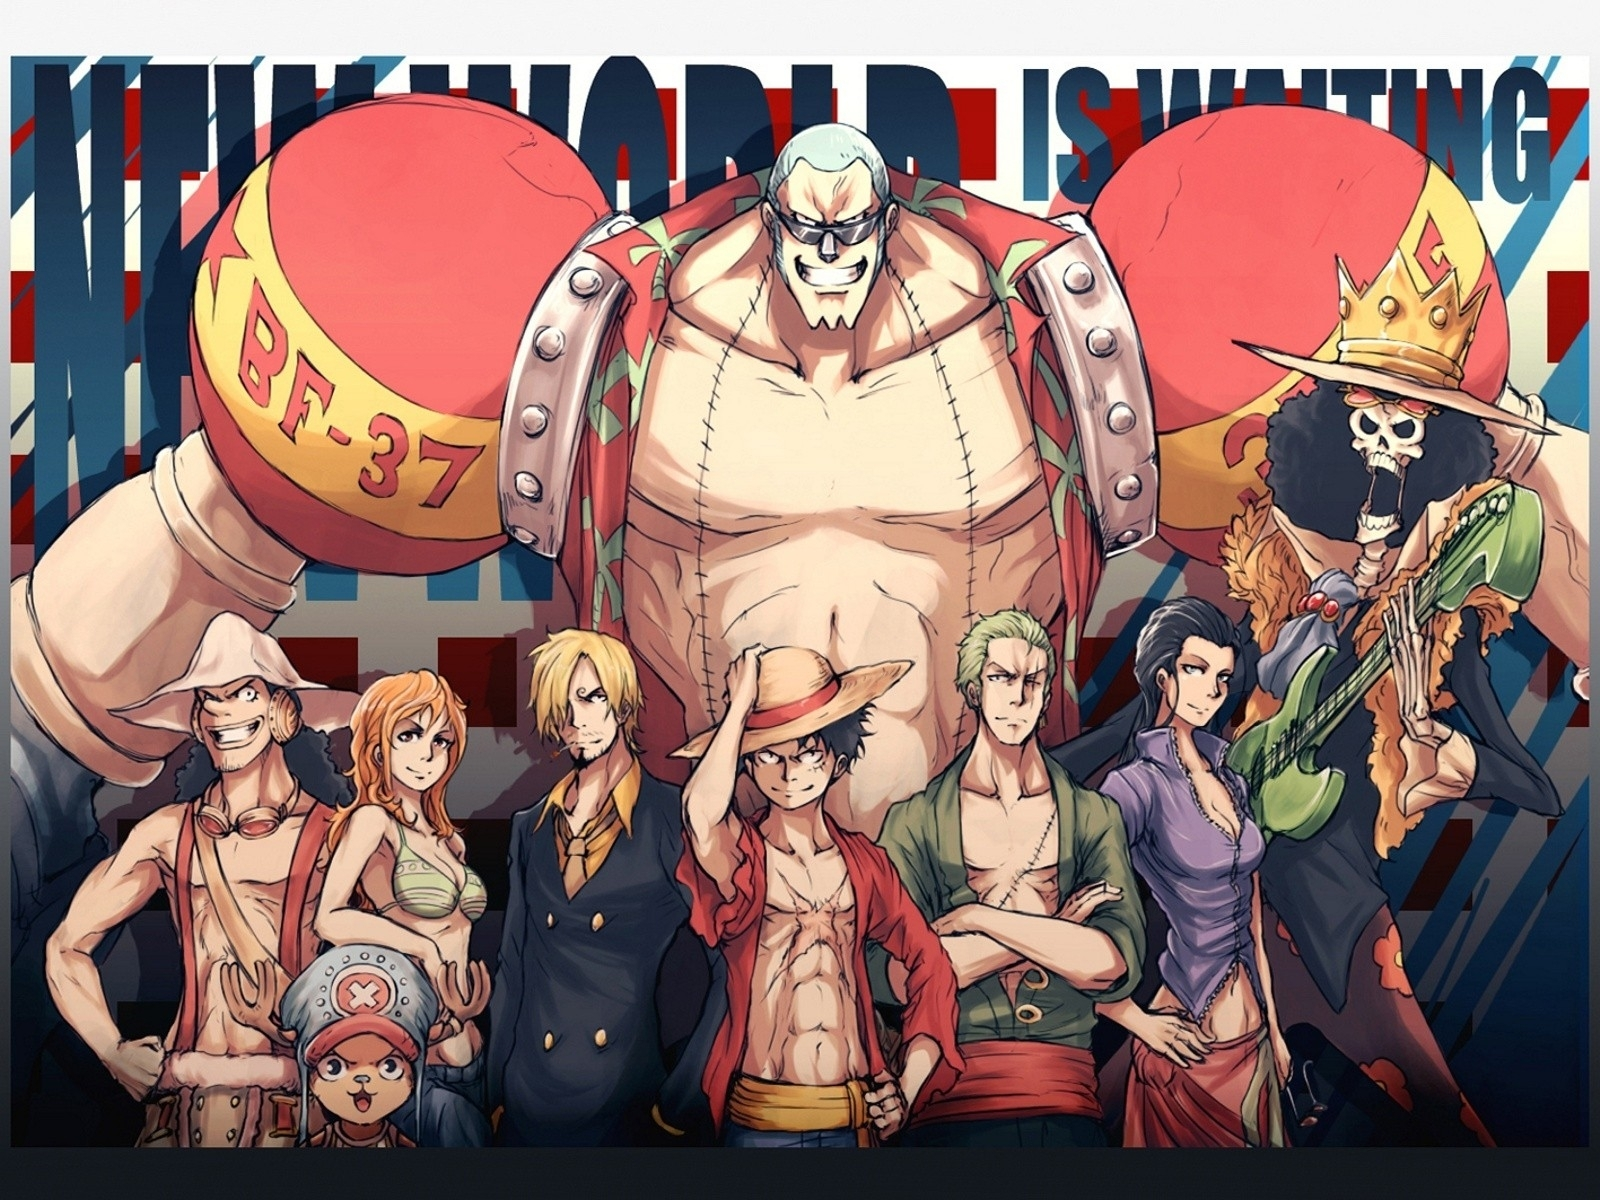 share and tag a friend who would love this! #onepiecefans